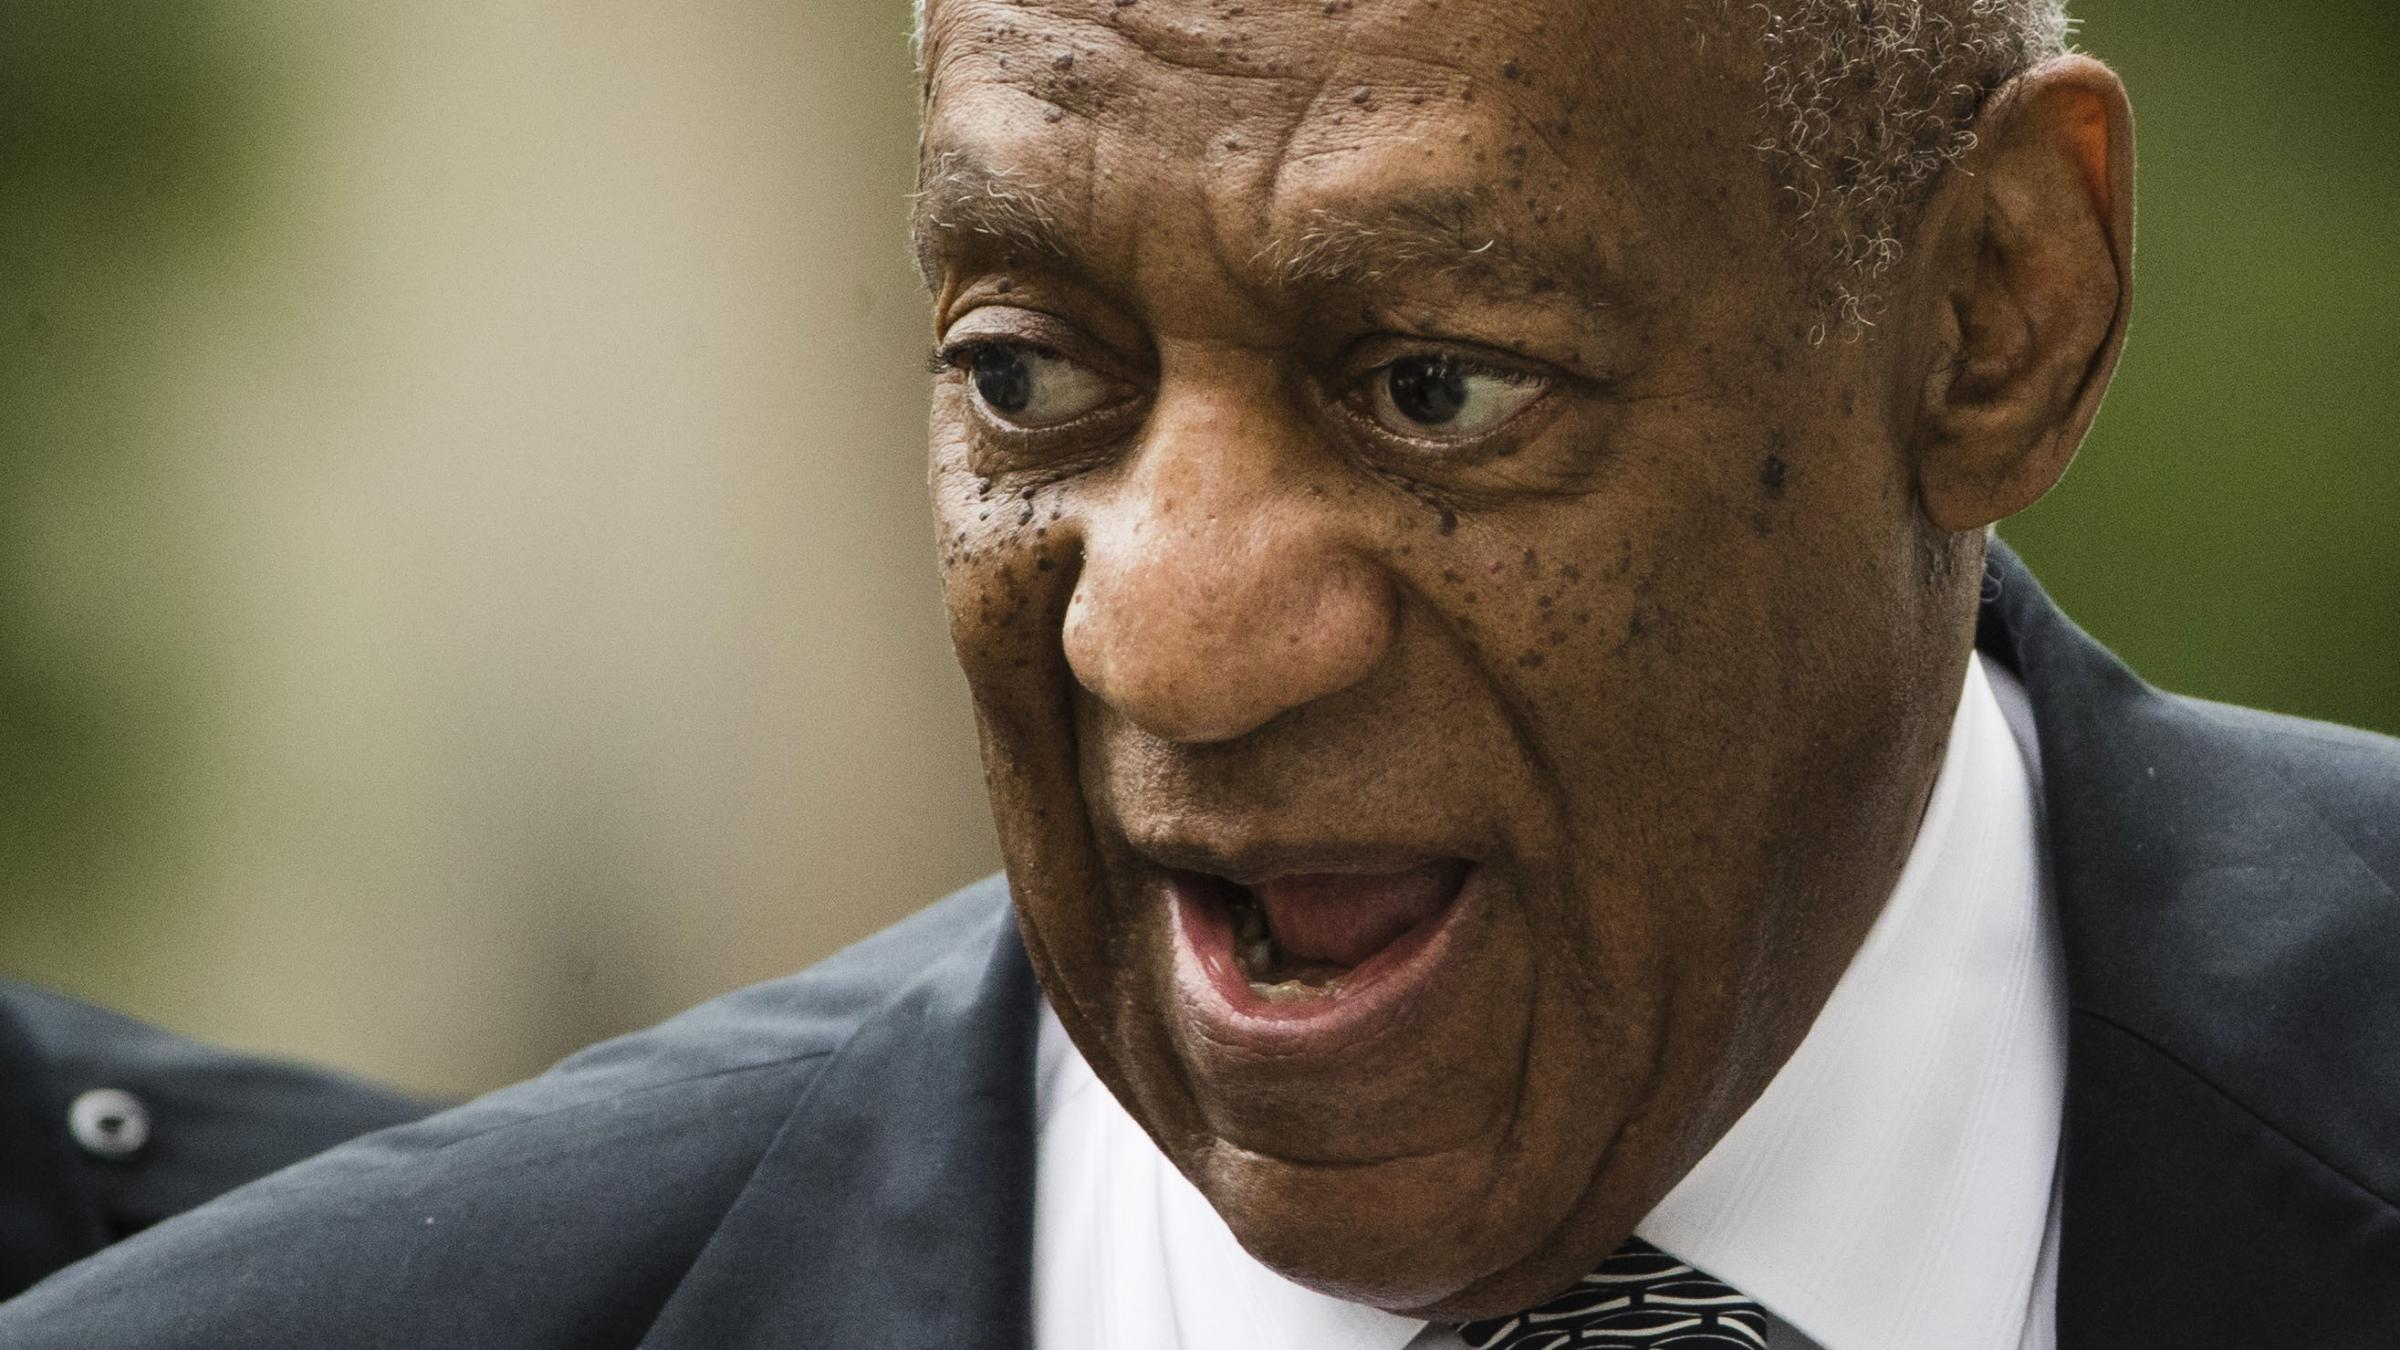 Cosby Trial: Deadlocked Jury Deliberates on Day 5